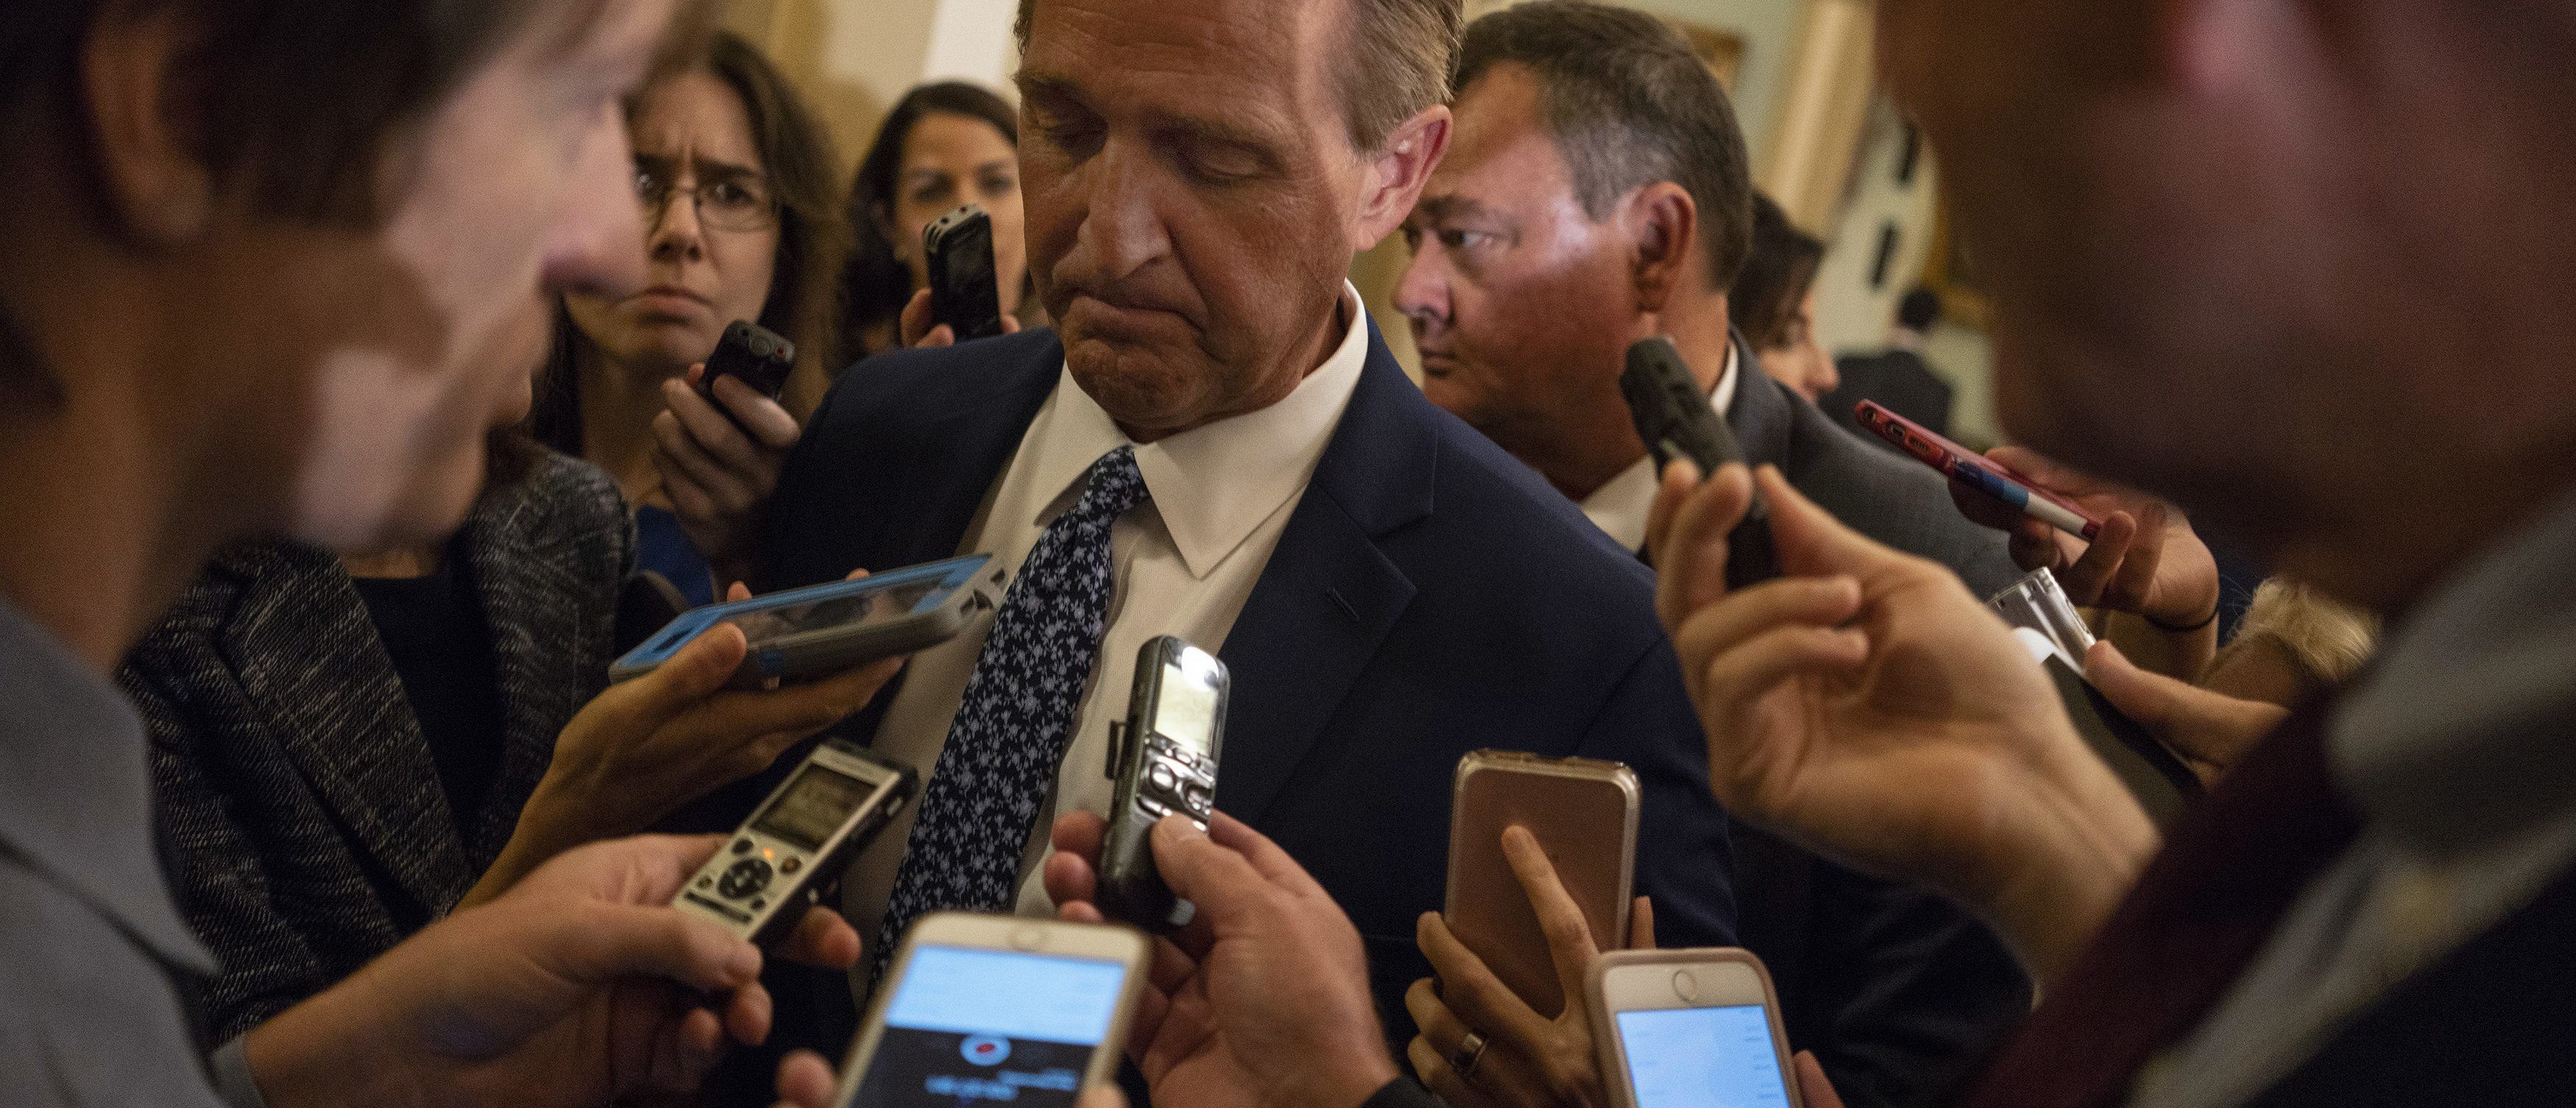 WASHINGTON, DC - SEPTEMBER 18: Sen. Jeff Flake (R-AZ) speaks with reporters ahead of the weekly policy luncheons on Capitol Hill September 18, 2018 in Washington, DC. Senate Majority Leader Mitch McConnell has announced a hearing before the Judiciary Committee with Kavanaugh and his accuser, Christine Blasey Ford, next Monday. (Photo by Aaron P. Bernstein/Getty Images)